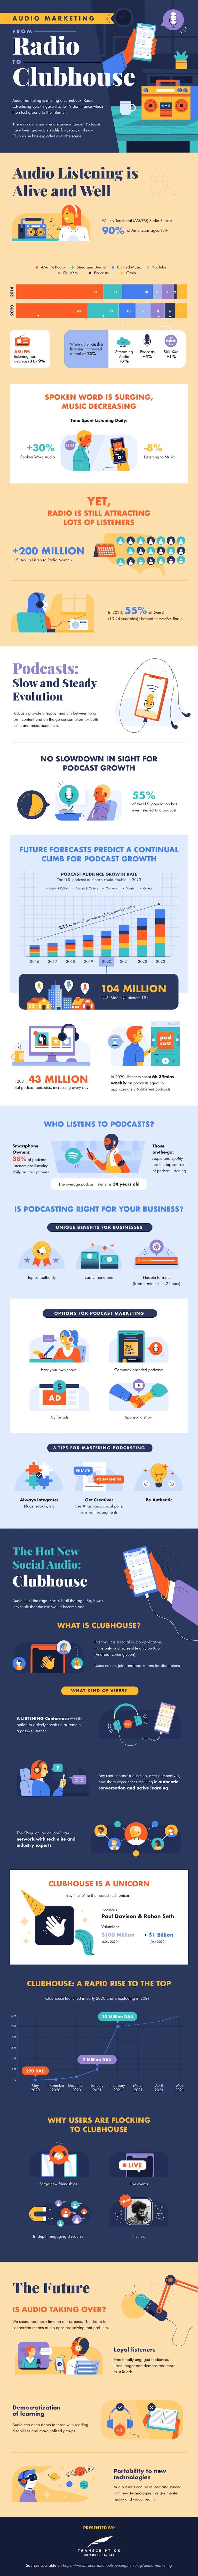 the state of audio marketing in 2021 infographic